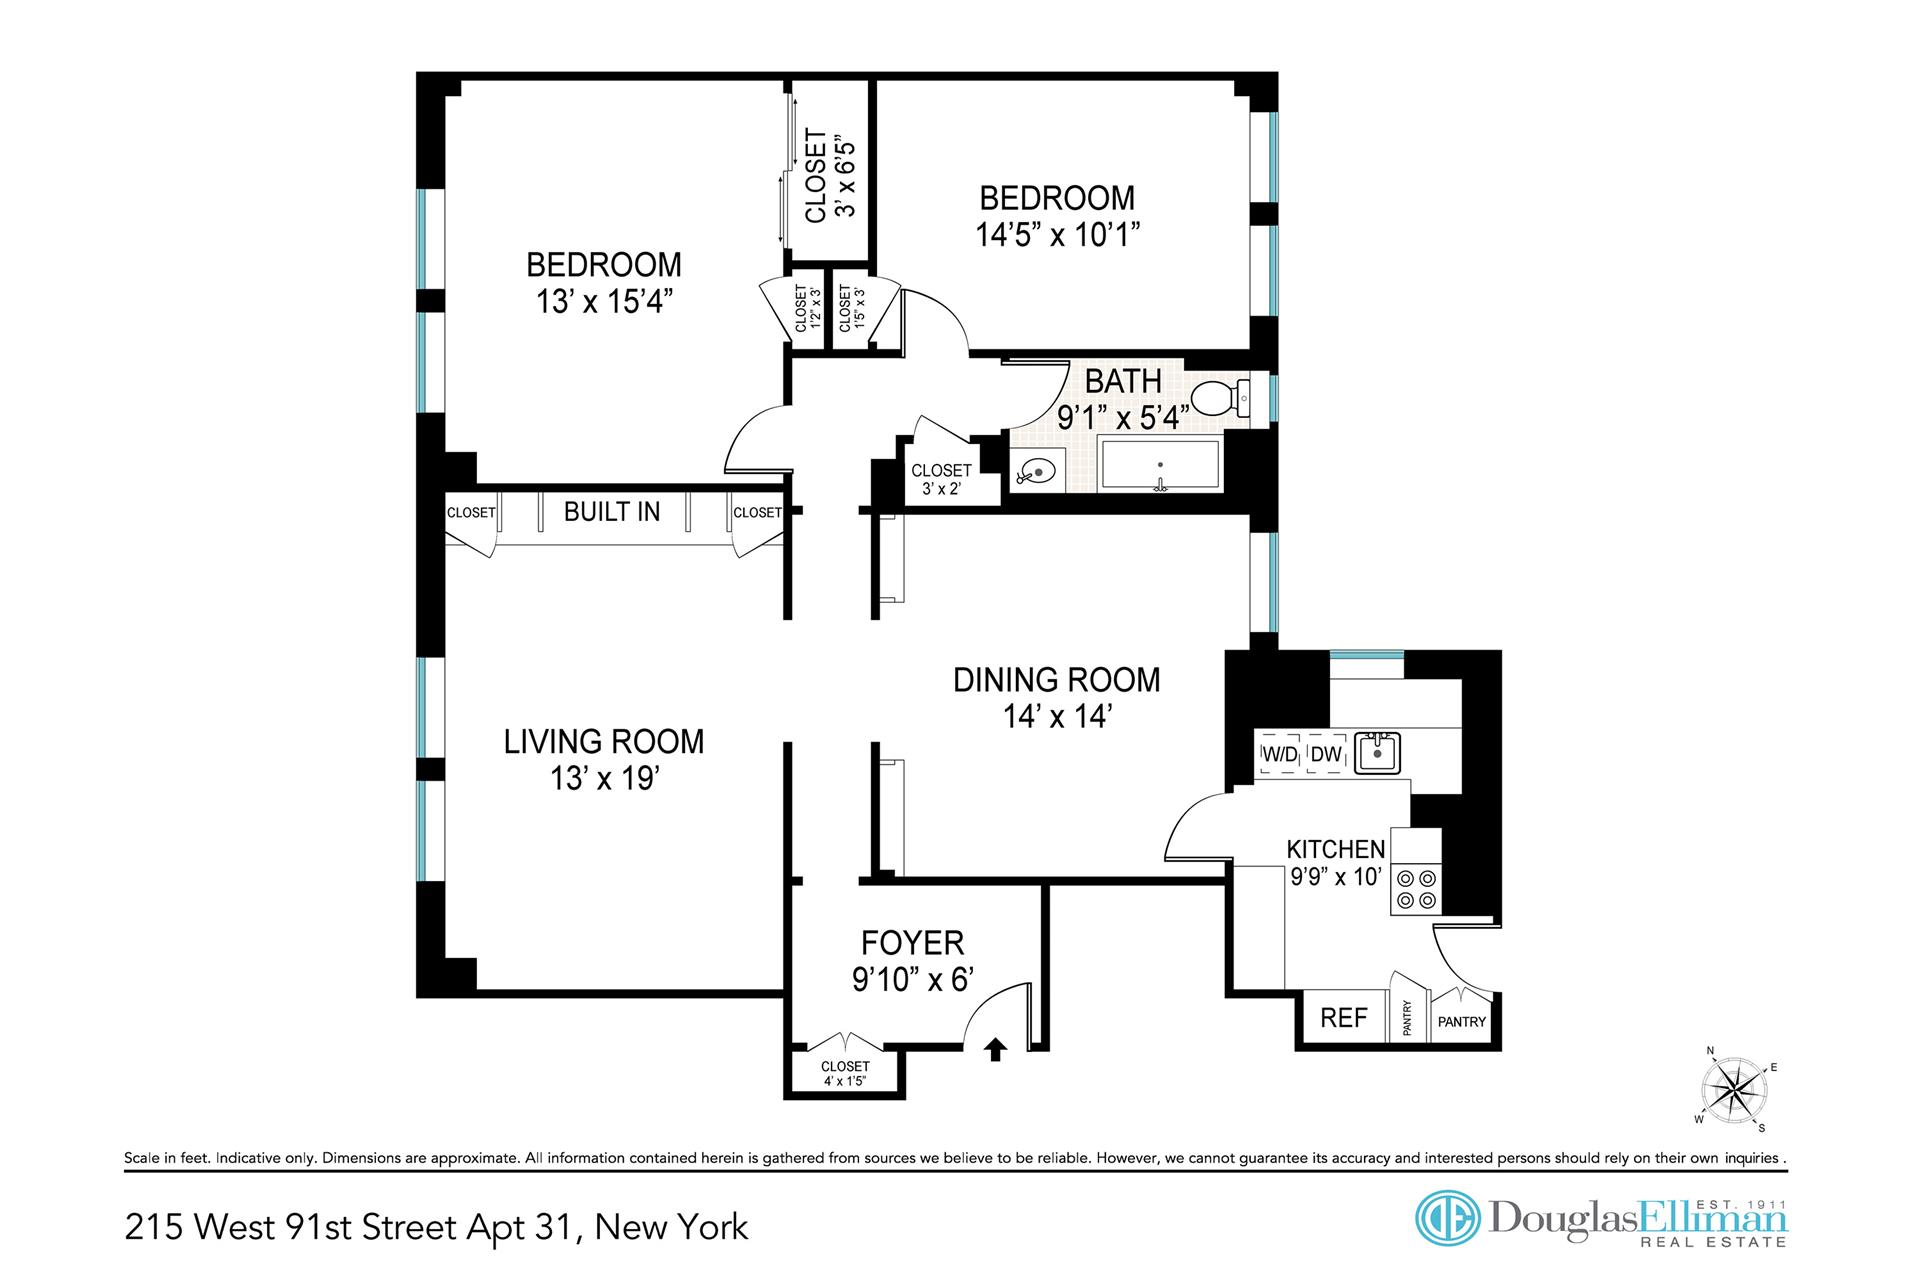 Floor plan of De Soto, 215 West 91st St, 31 - Upper West Side, New York